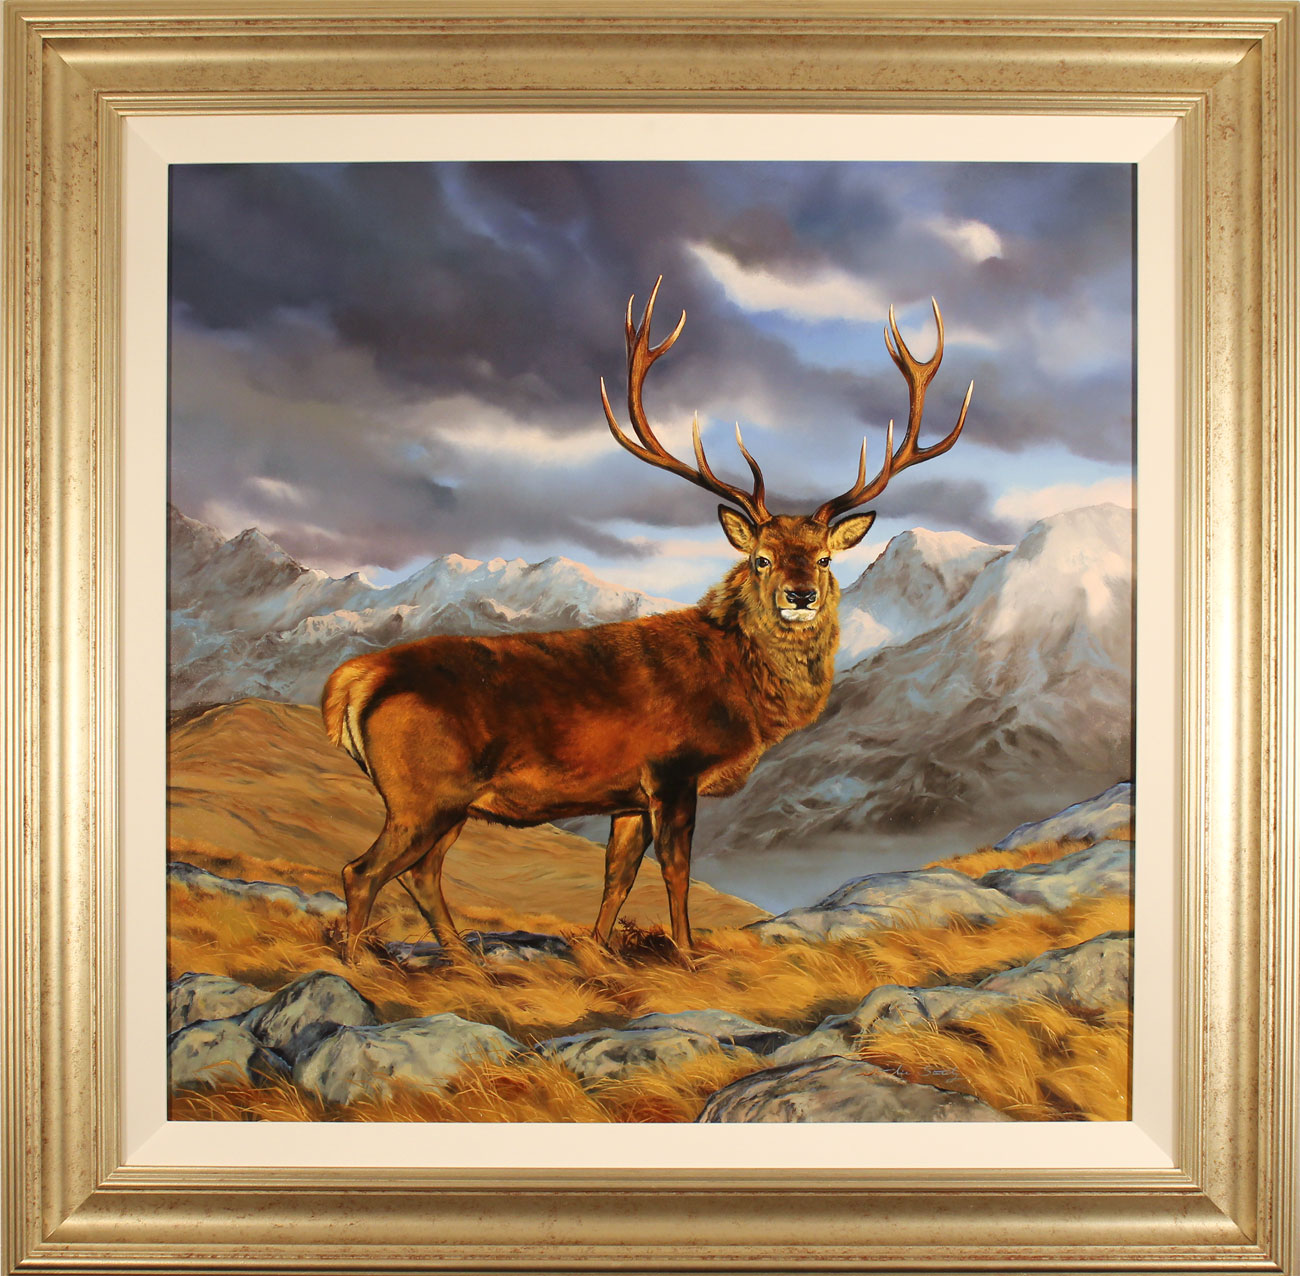 Natalie Stutely, Original oil painting on panel, Glen Etive, Rannoch Moor. Click to enlarge